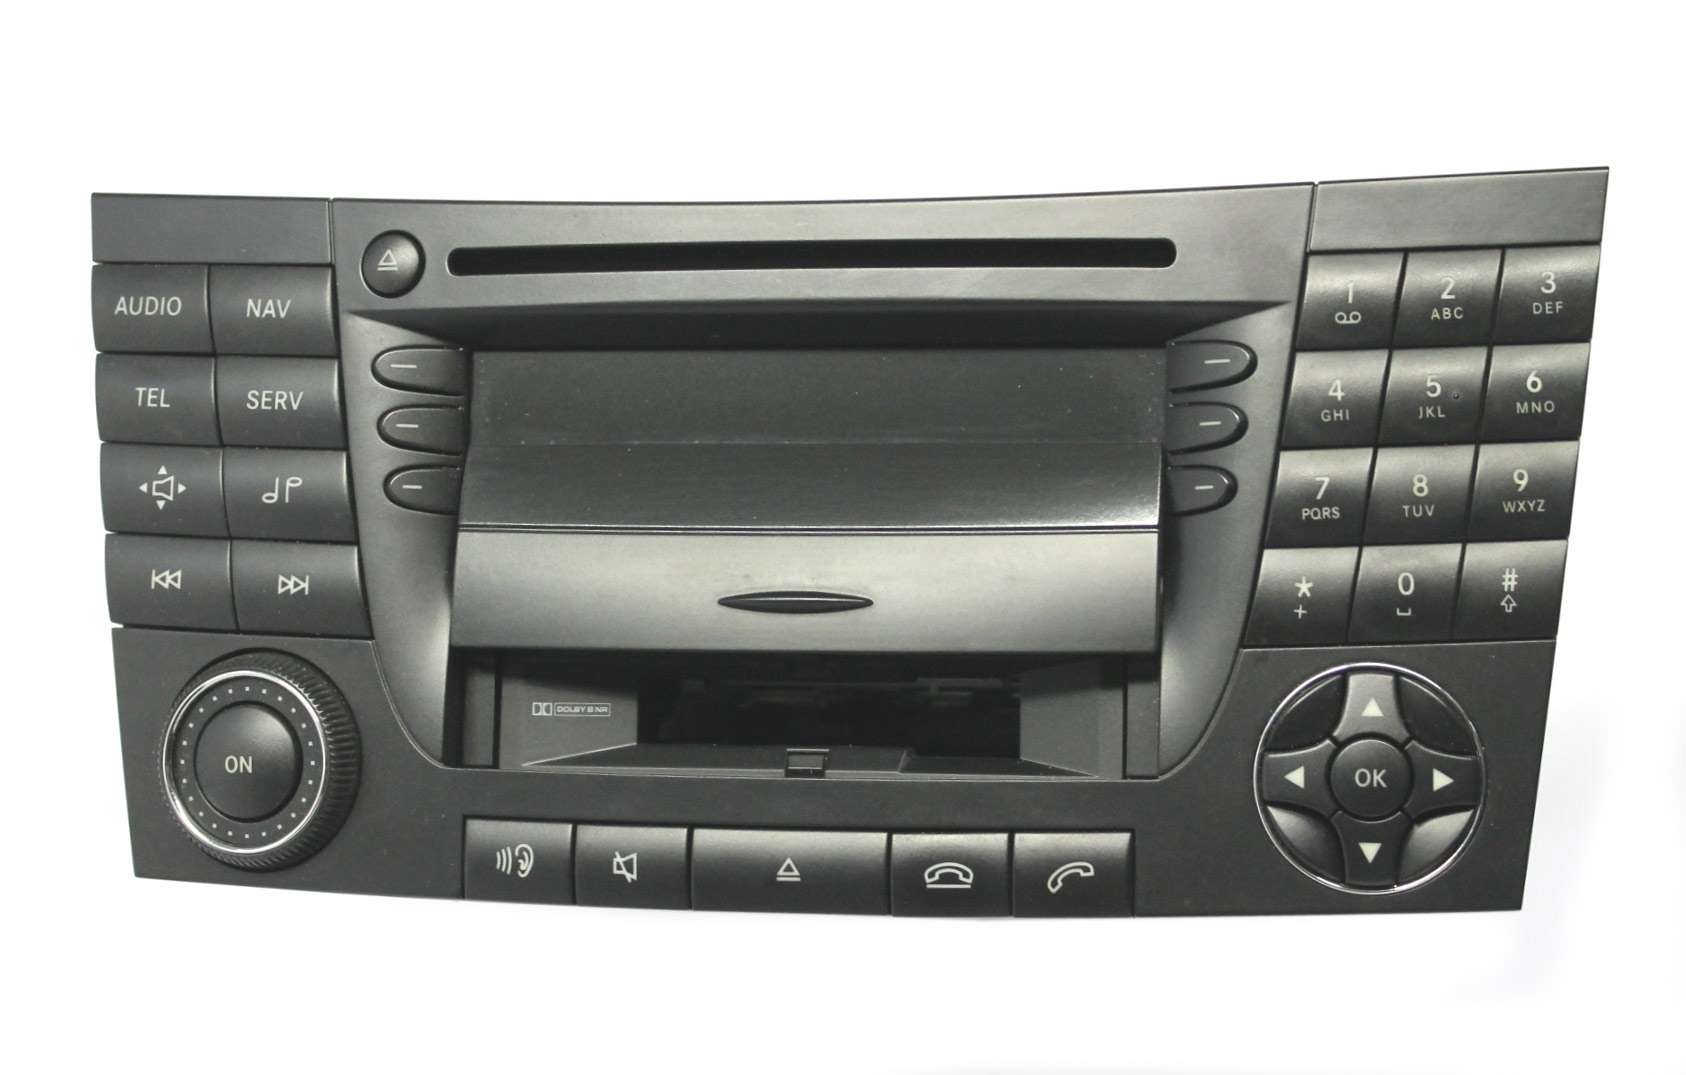 mercedes benz navigationssystem audio 50 aps a2118200679 navi ntg 1 cd telefon ebay. Black Bedroom Furniture Sets. Home Design Ideas